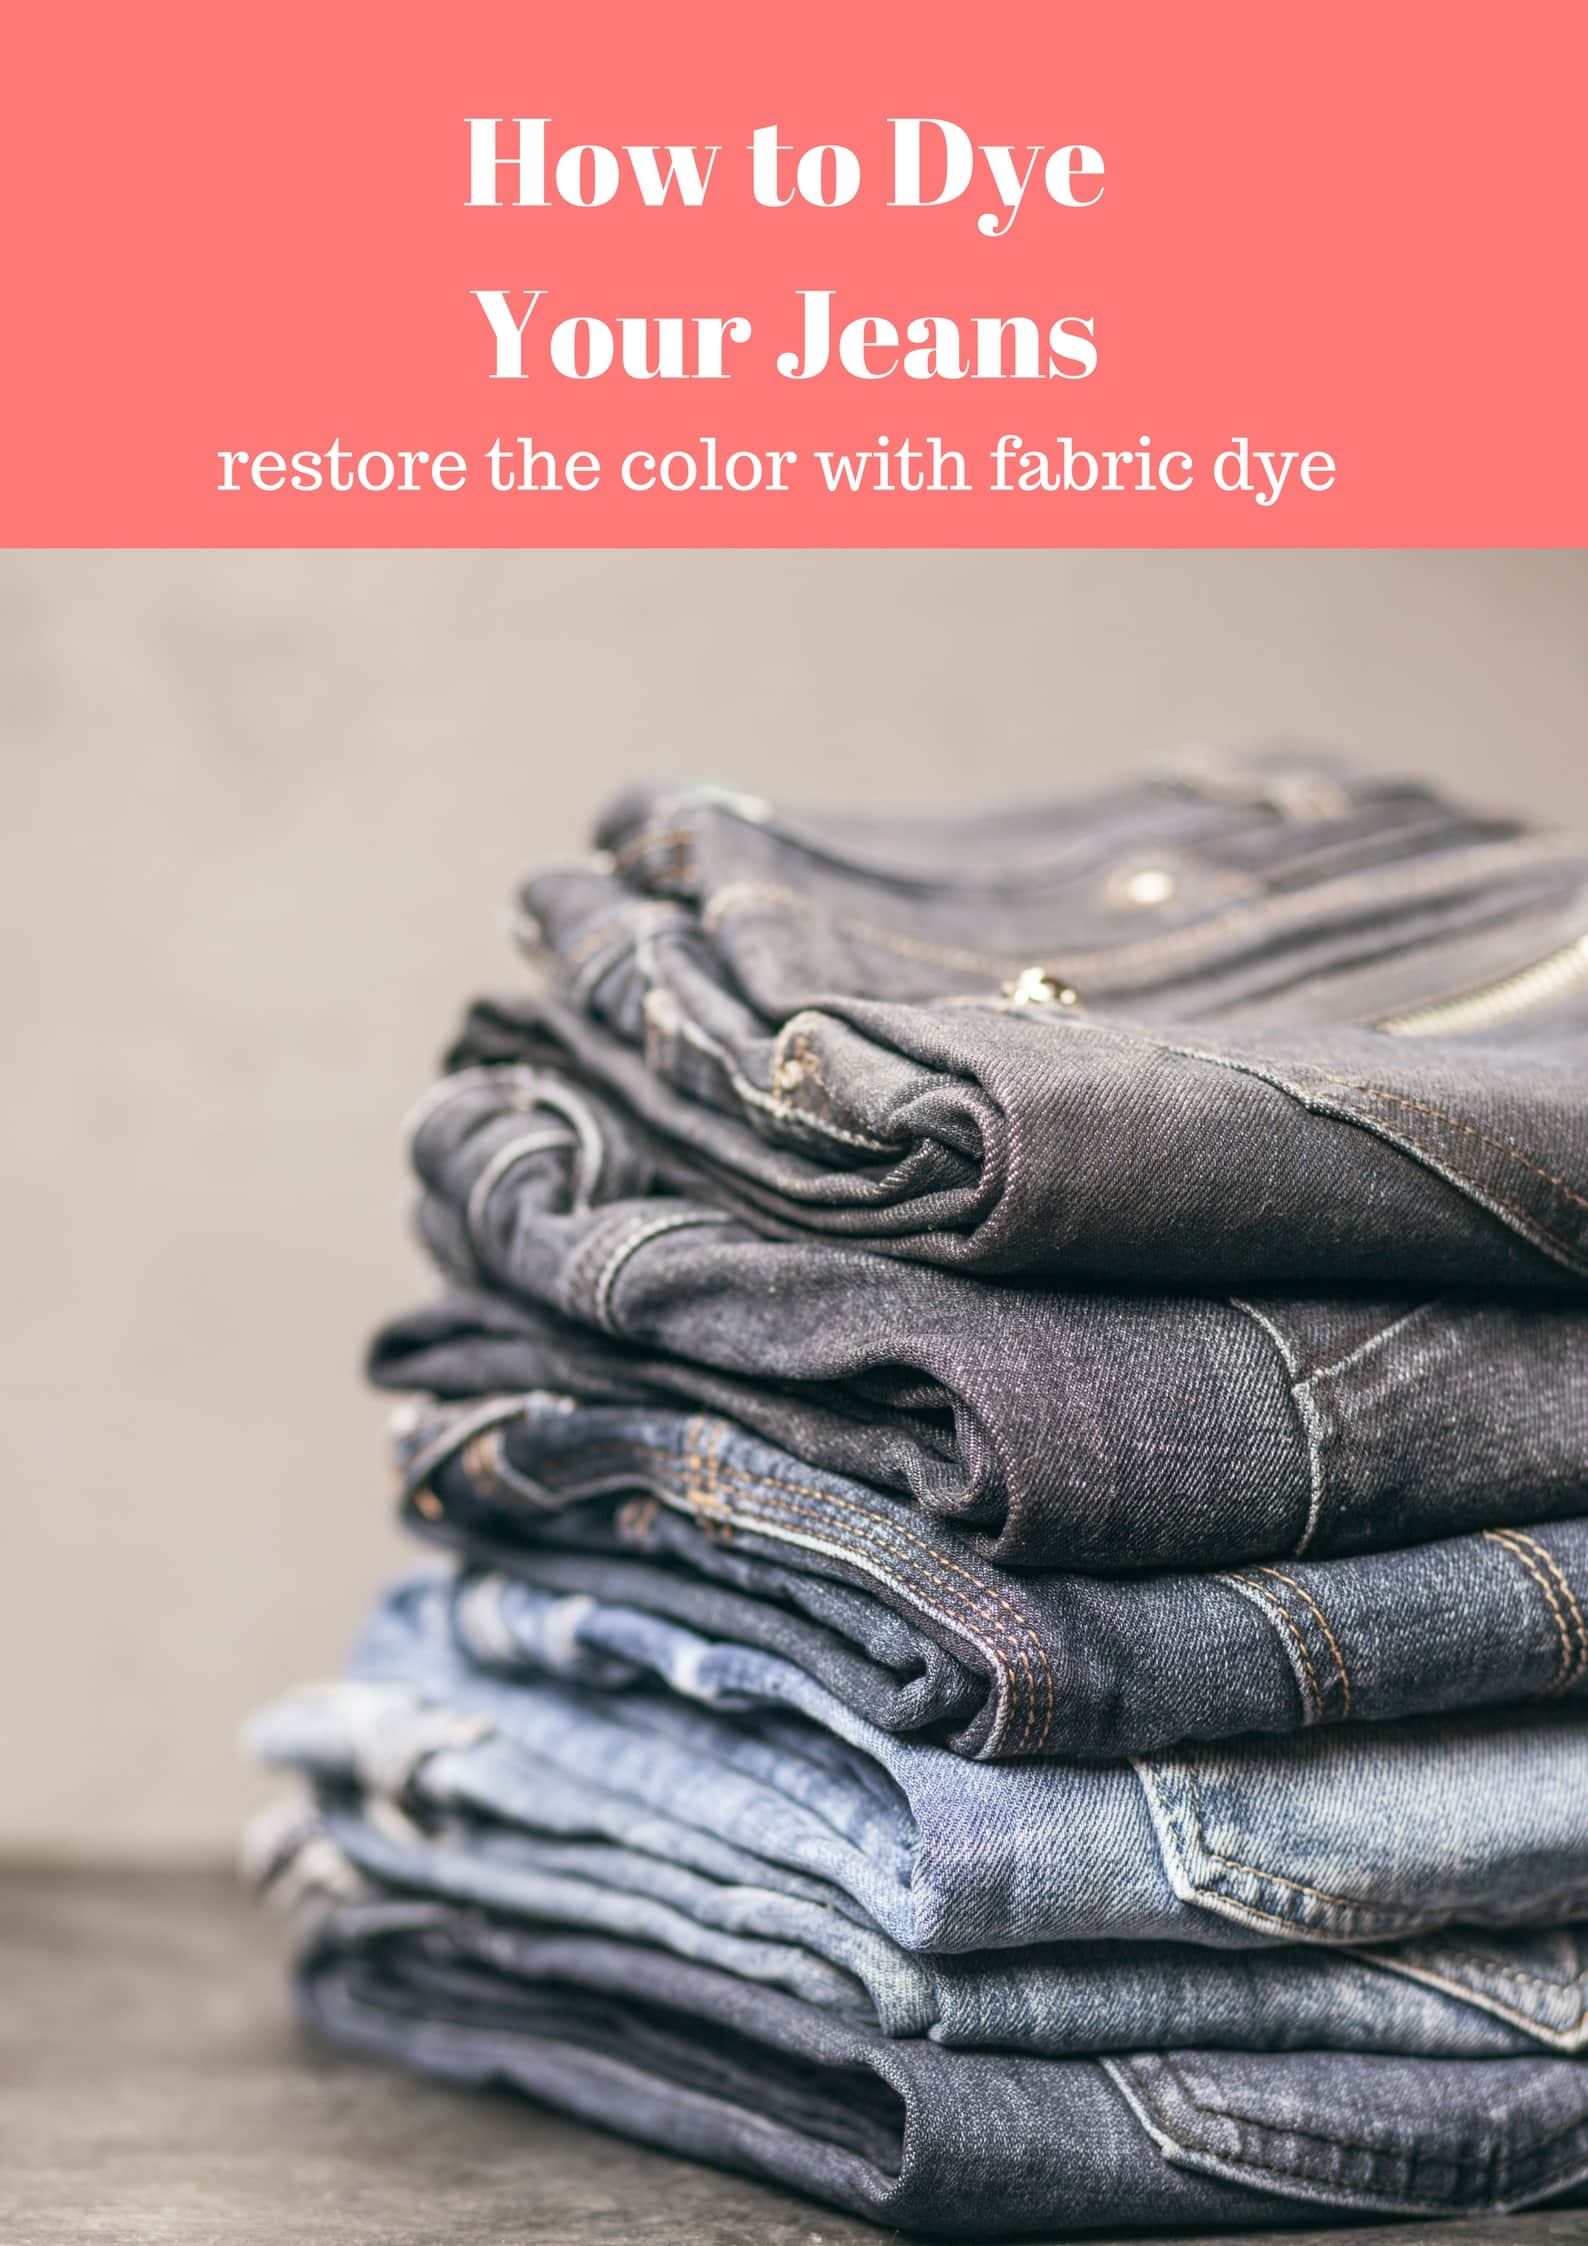 How to Dye Your Jeans from MomAdvice.com